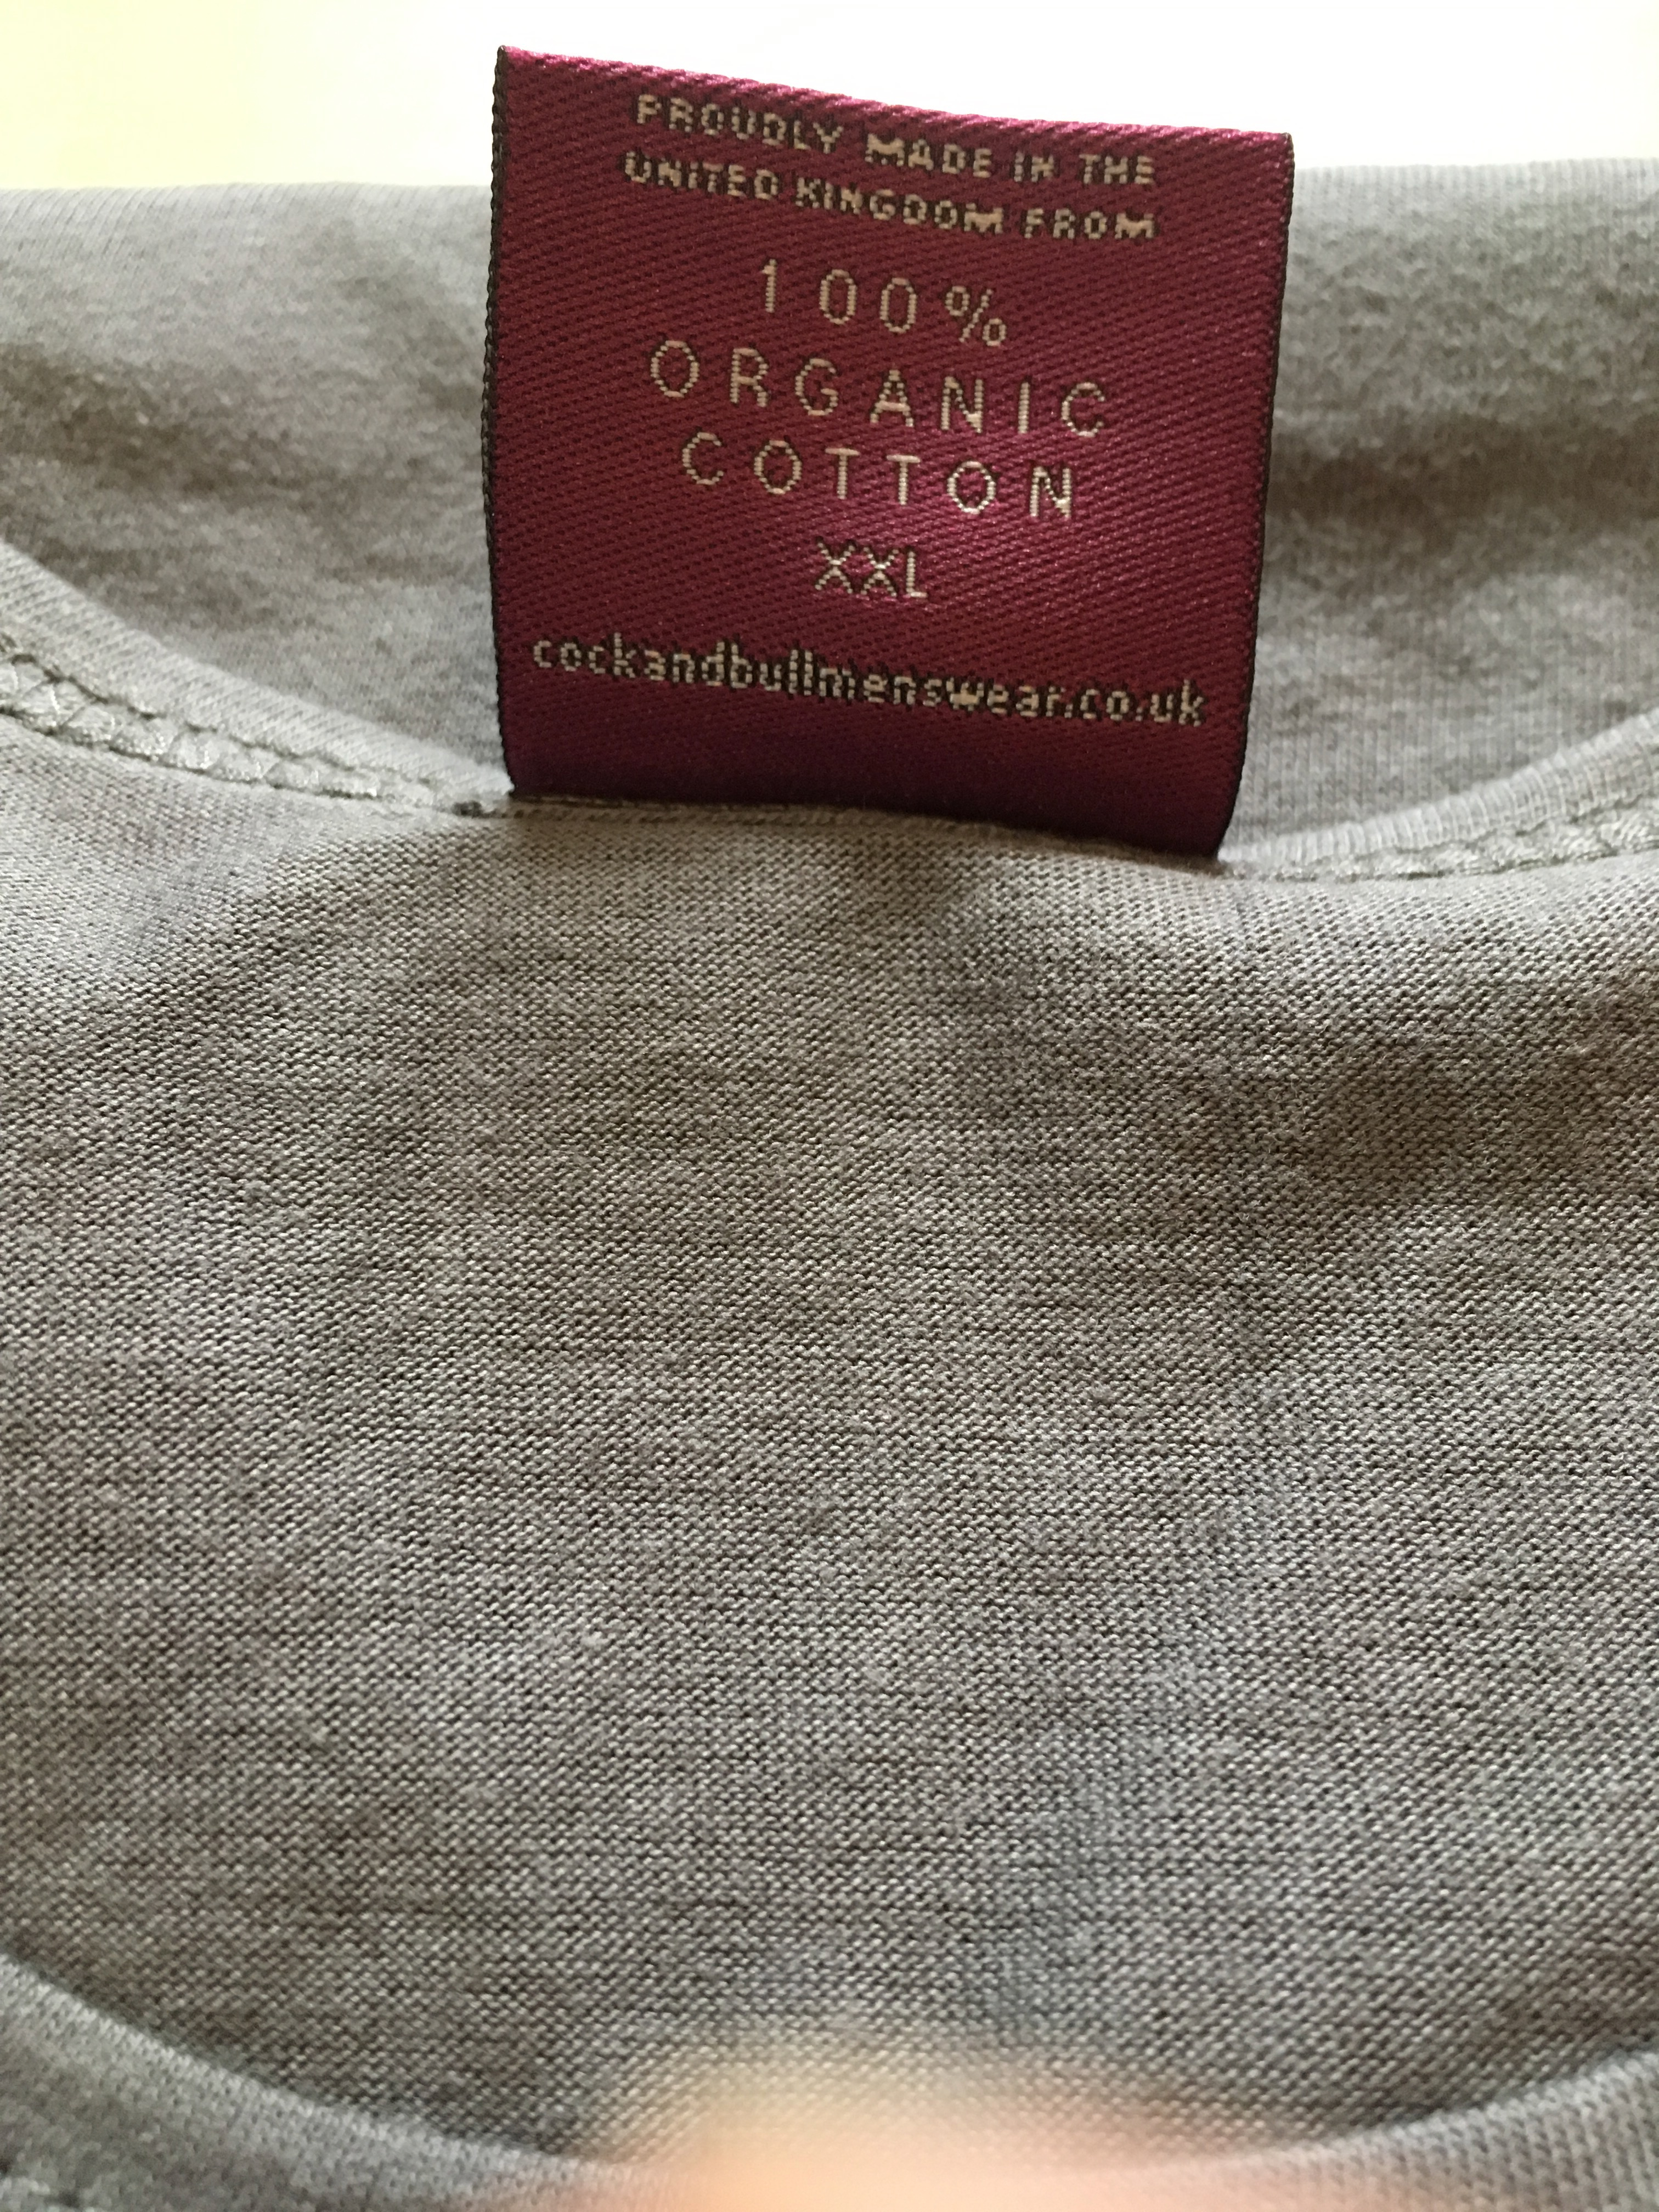 8295ed7cfbe7 Cock and Bull t-shirt. Easy Tee XXL Ash Grey. Made in the United Kingdom.  Label view. Photograph by author 10 August 2018.